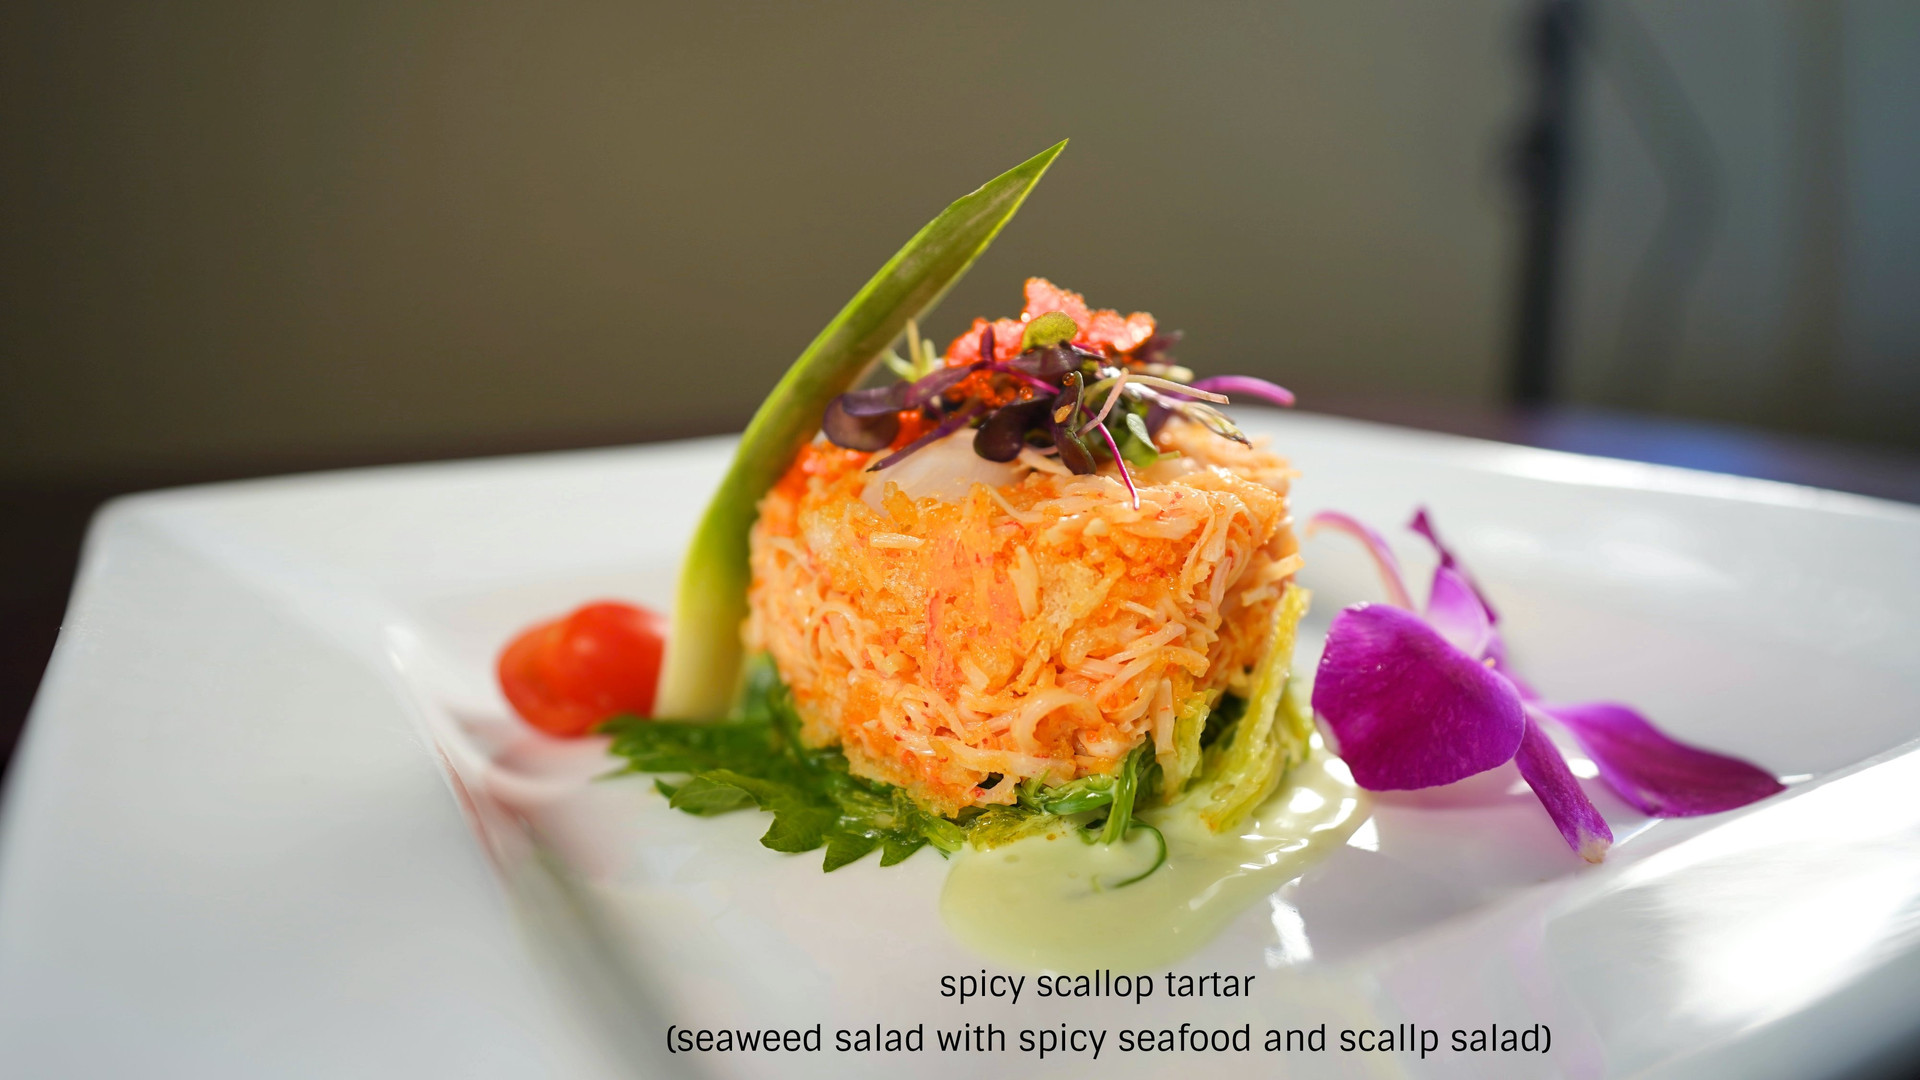 SPICY SCALLOP TARTAR.jpg